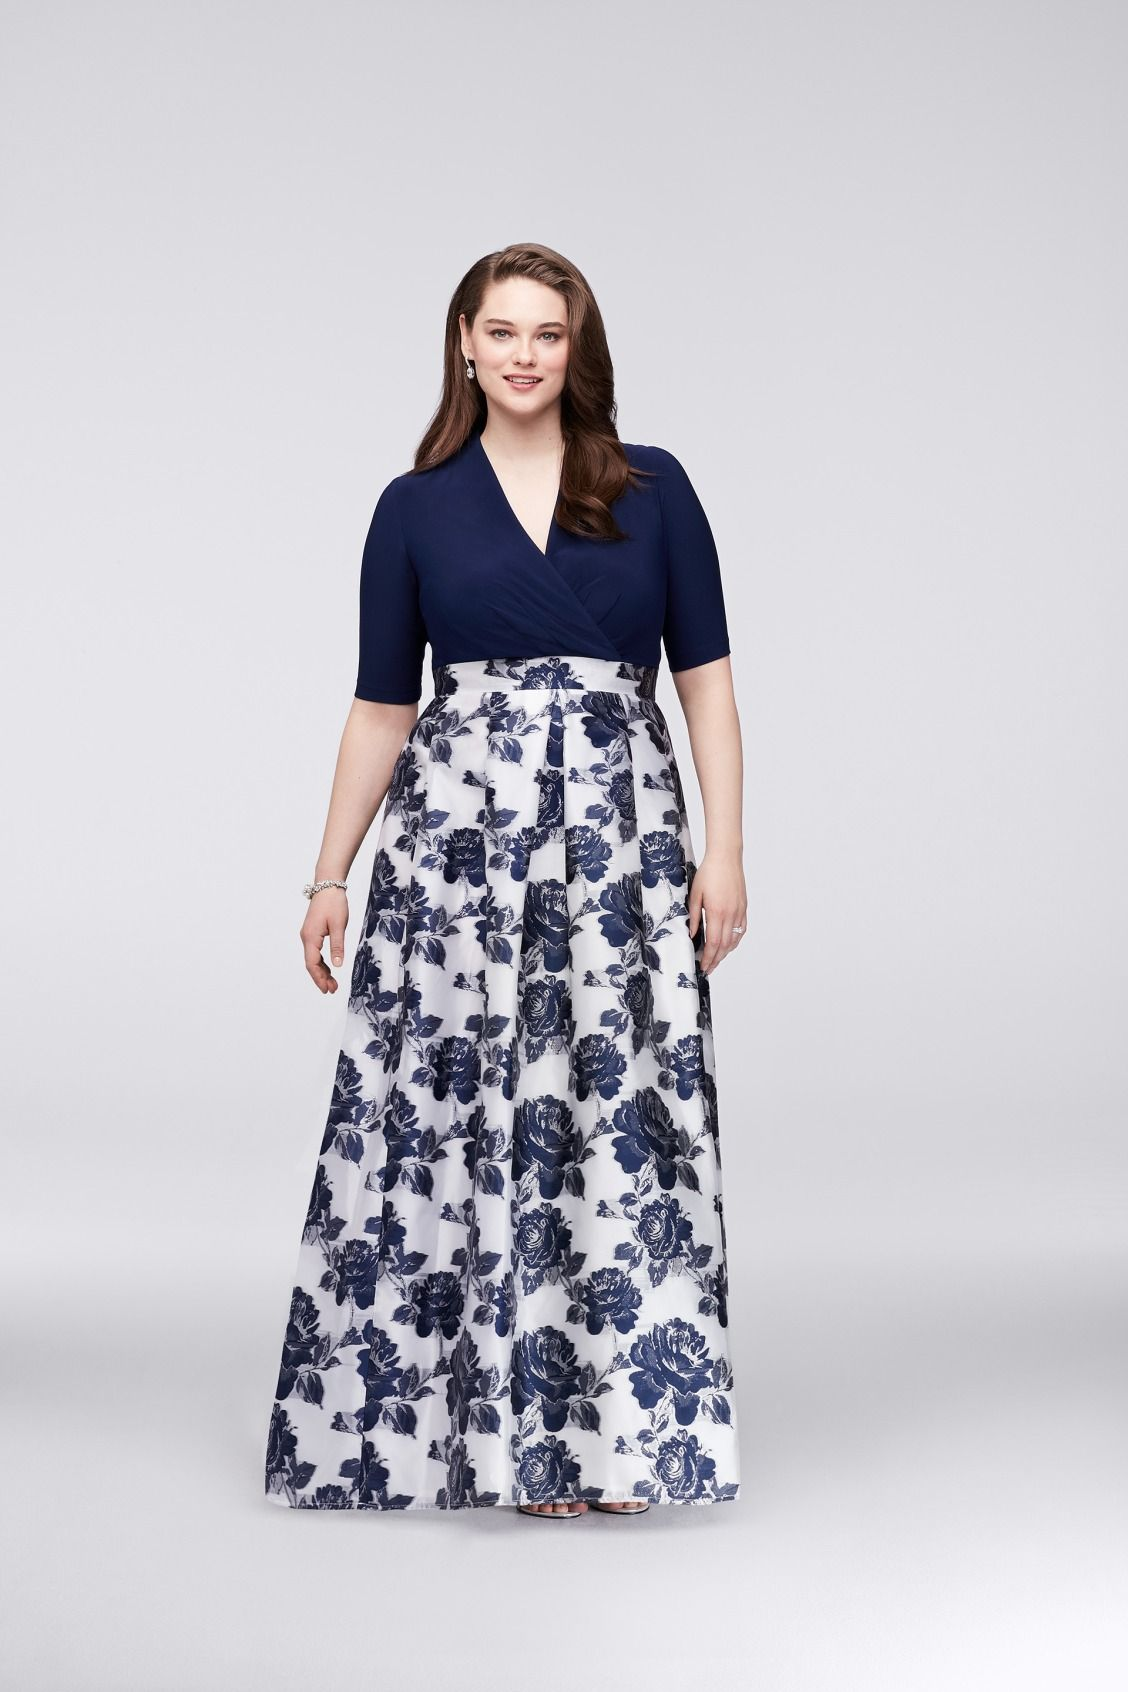 Floral Navy Surplice Plus Size Ball Gown Mother of the Bride dress or  Mother of the Groom dress with Jacquard Skirt available at David s Bridal ccb98e3b3144